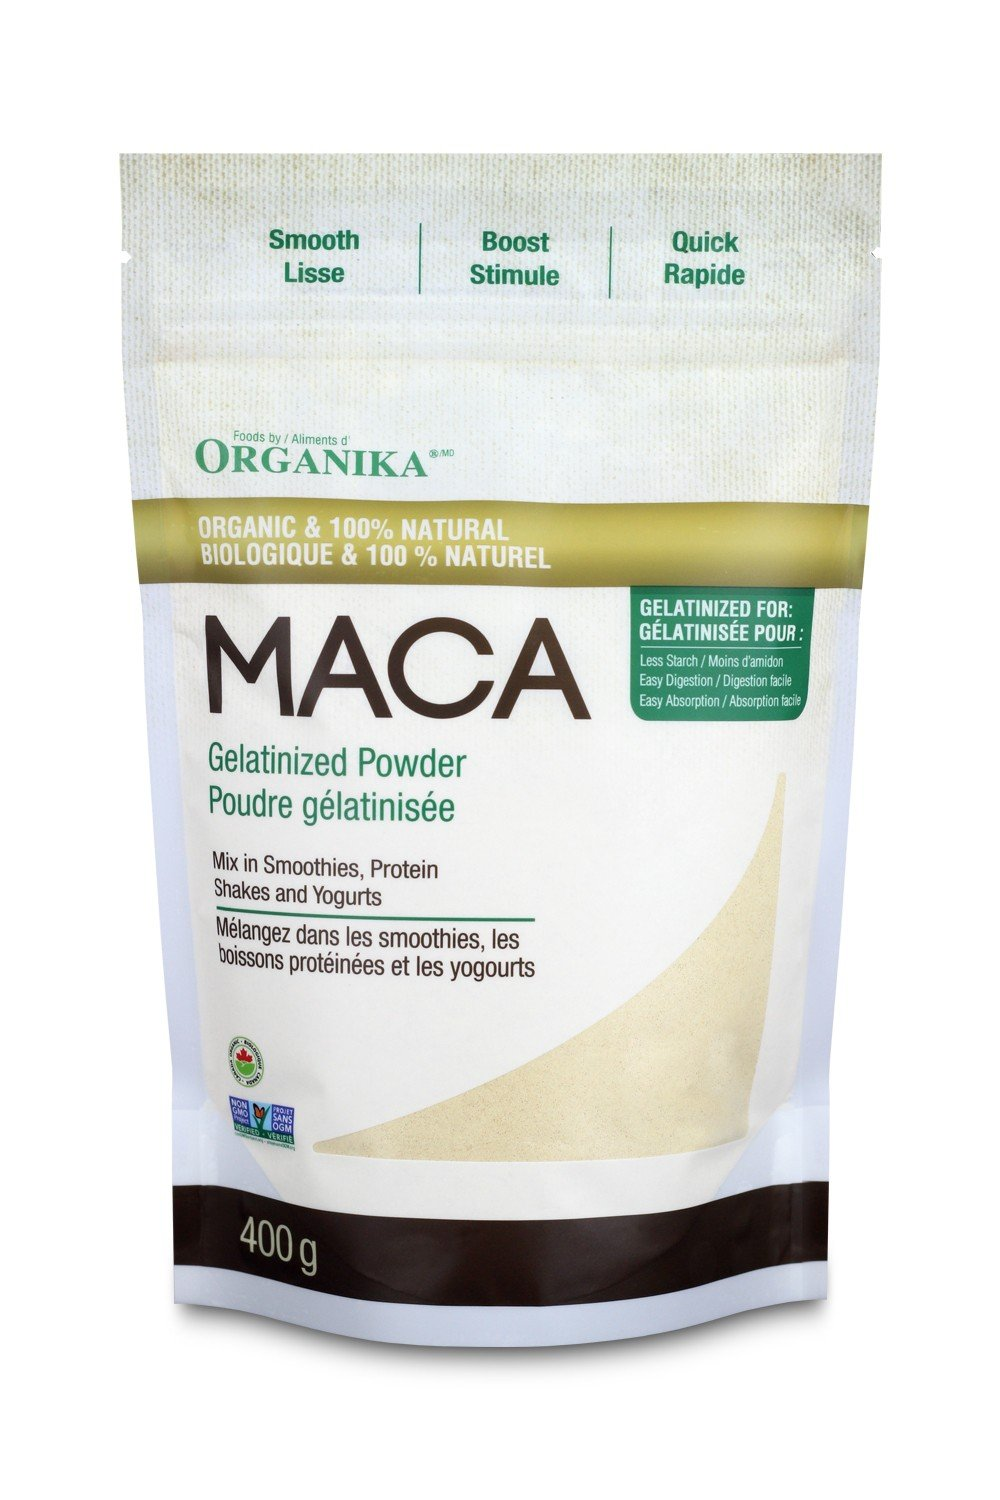 Maca Powder From Maca Berries Can Improve Your Health In Many Ways